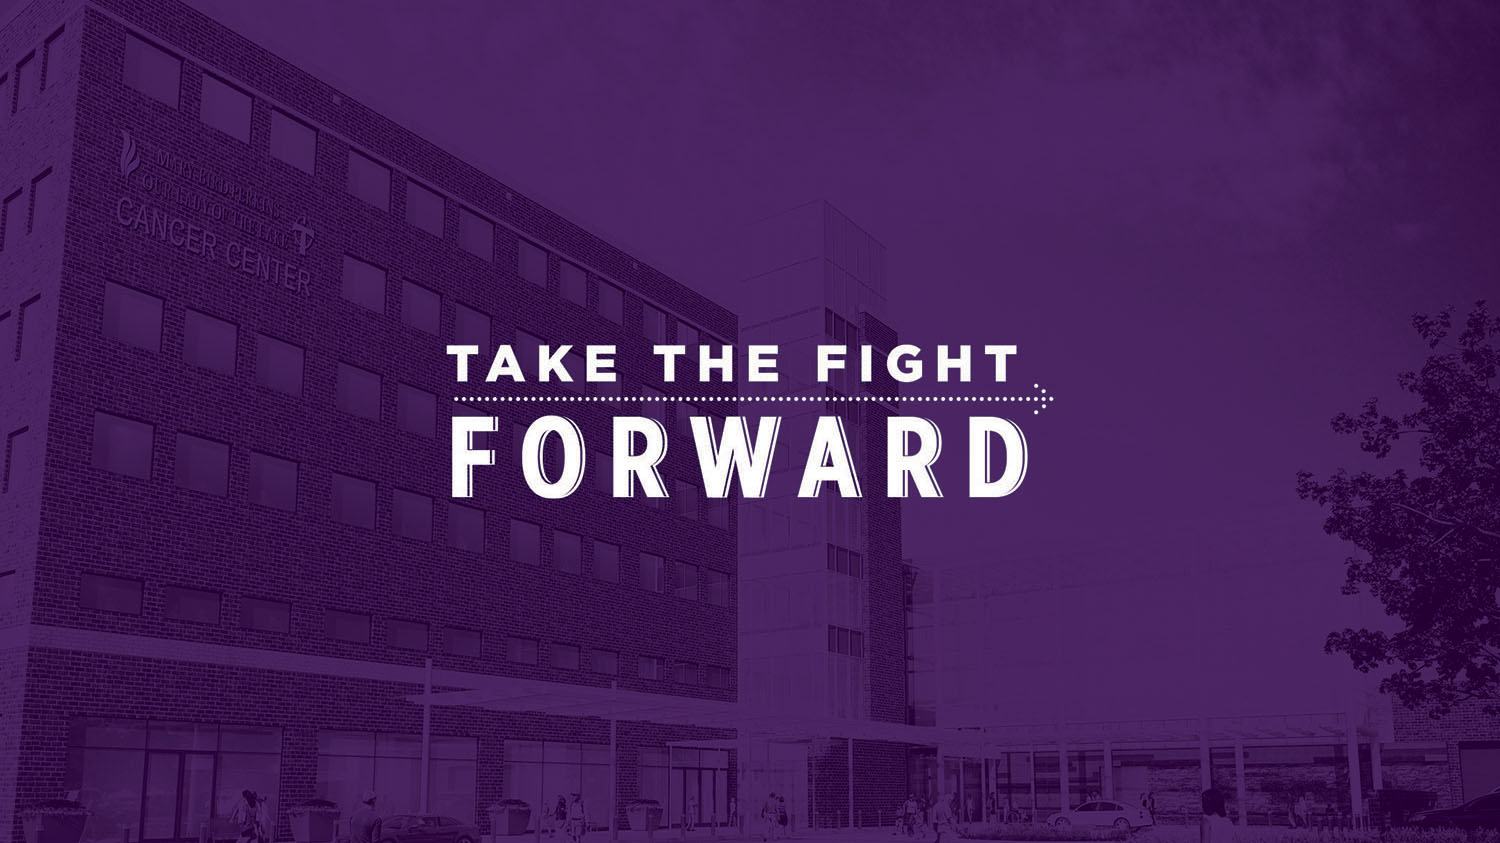 Mary Bird Perkins | Take the Fight Forward